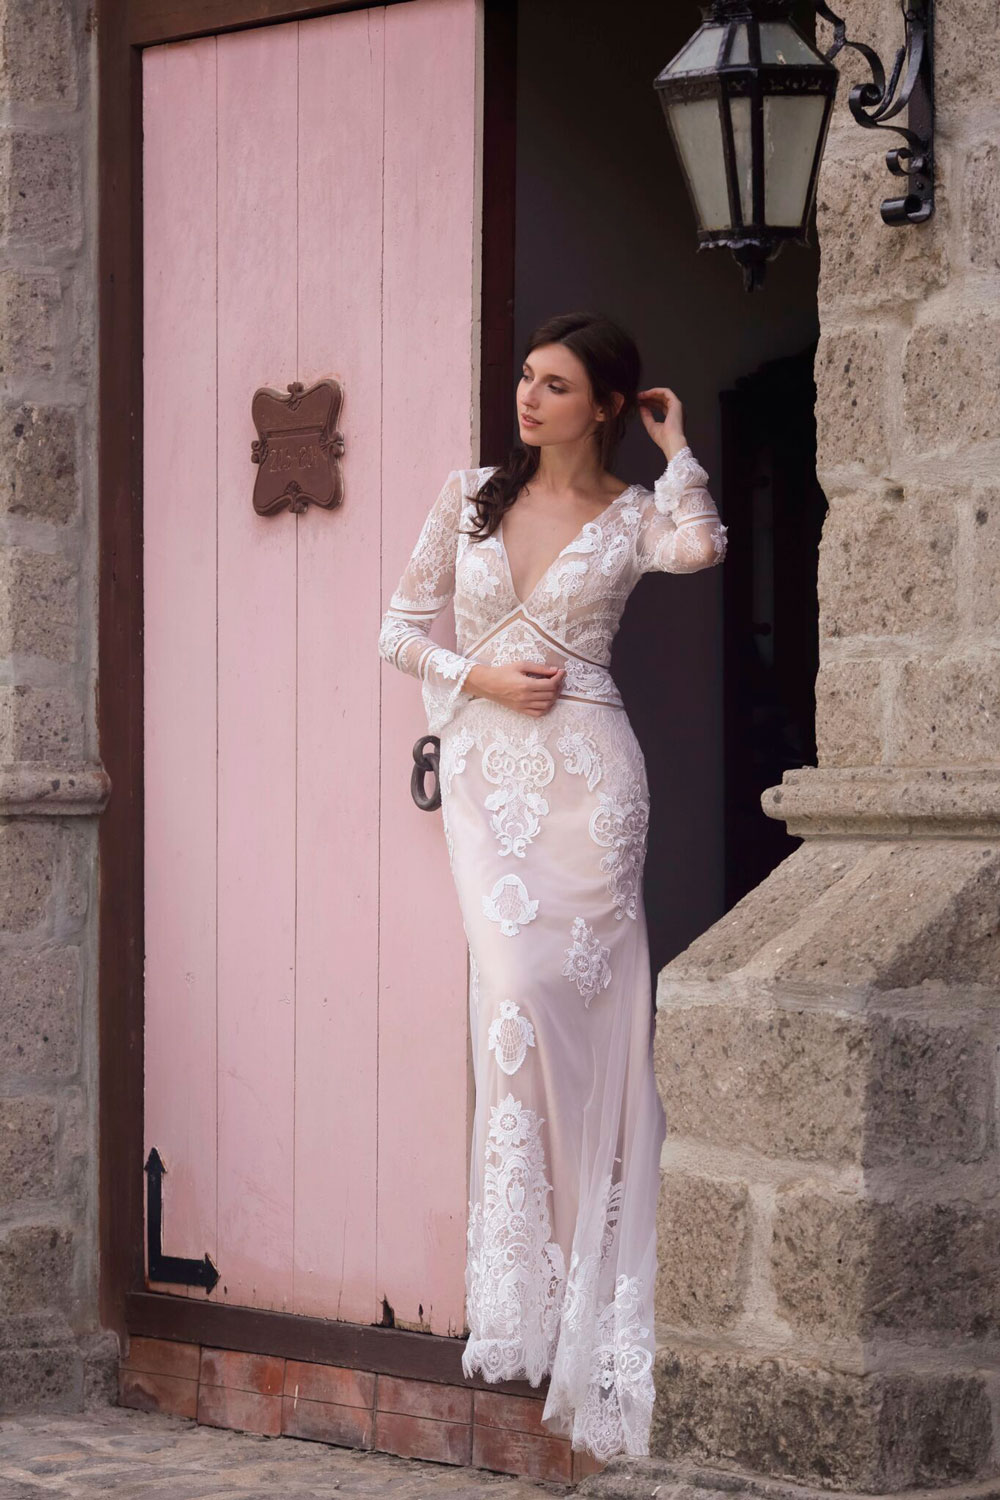 70's Inspired Bridal Gown by COCOMELODY